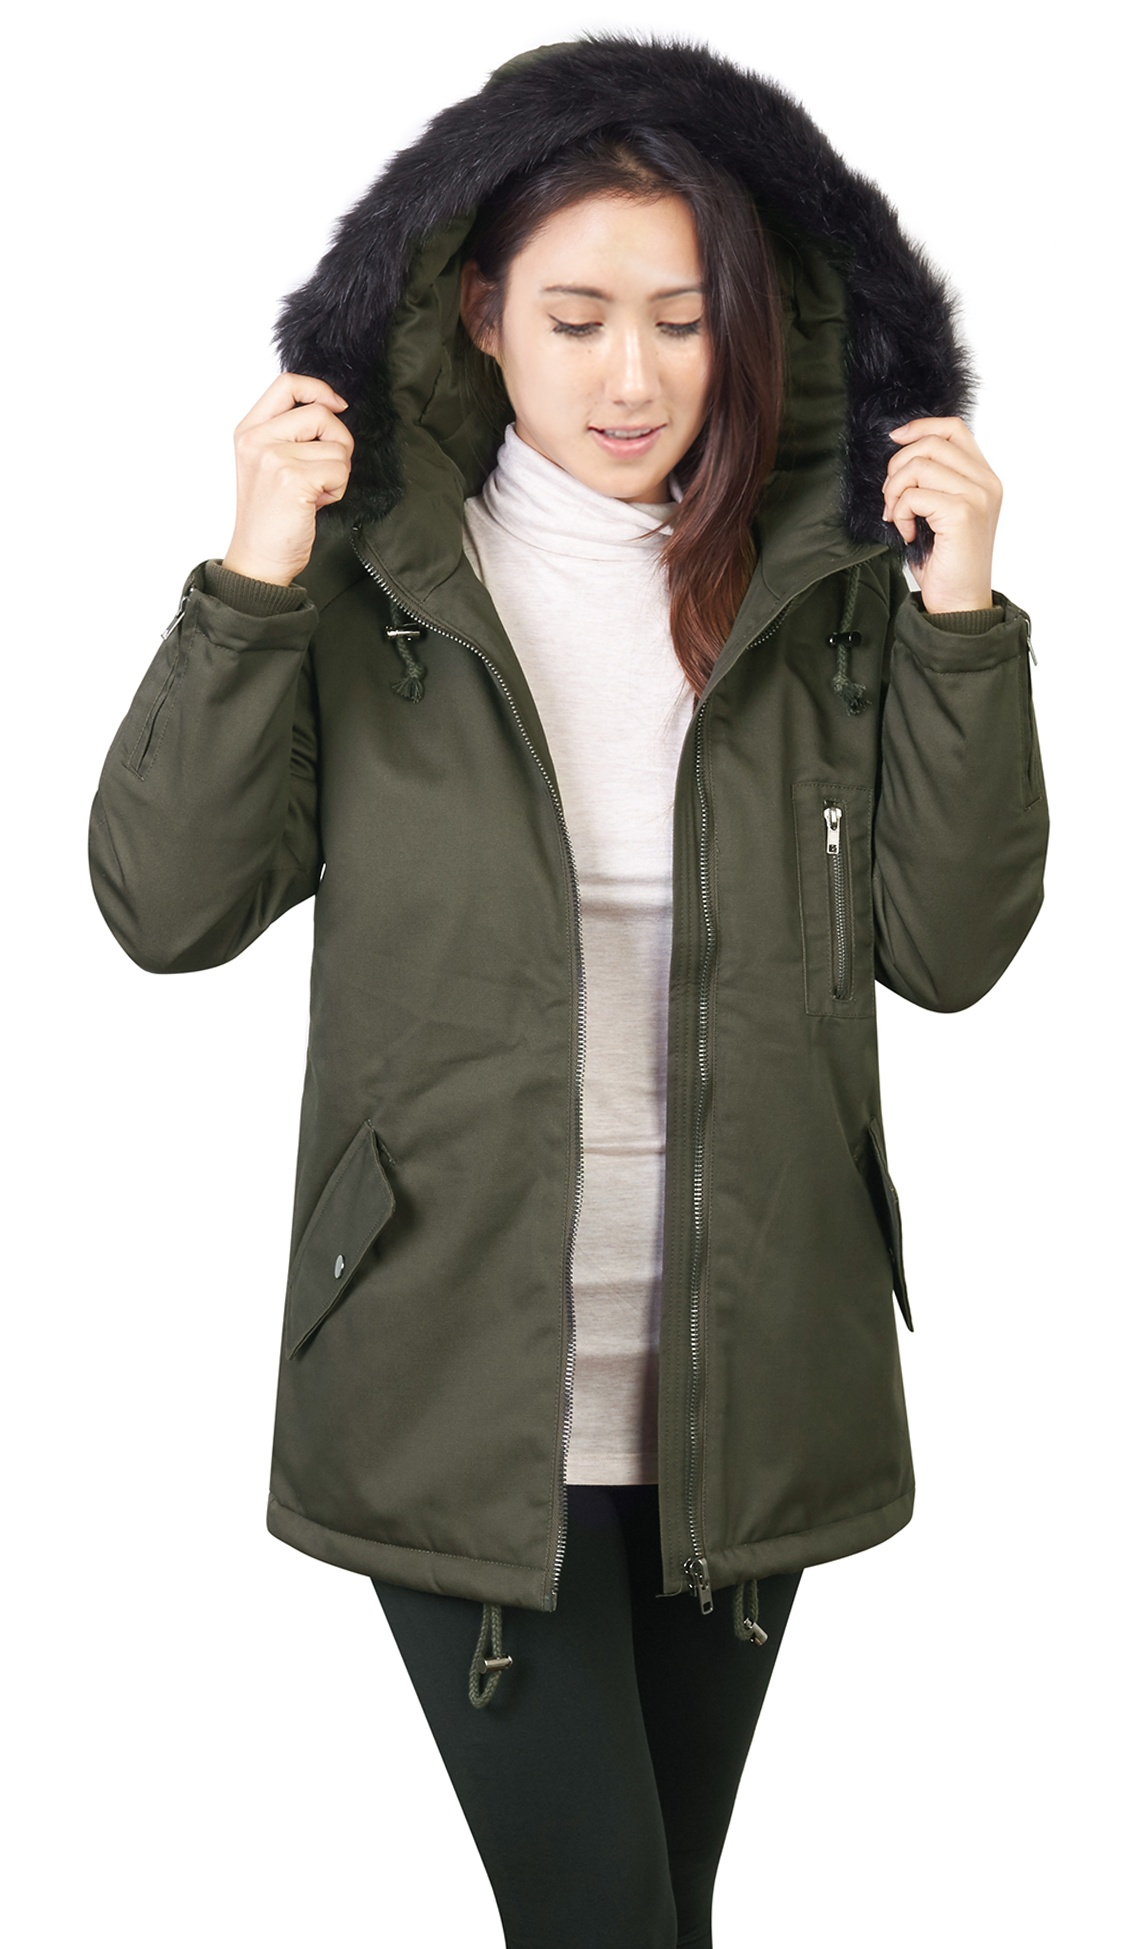 KOGMO Womens Thick Anorak Down Jacket Parka with Faux Fur Hoodie by Parkas